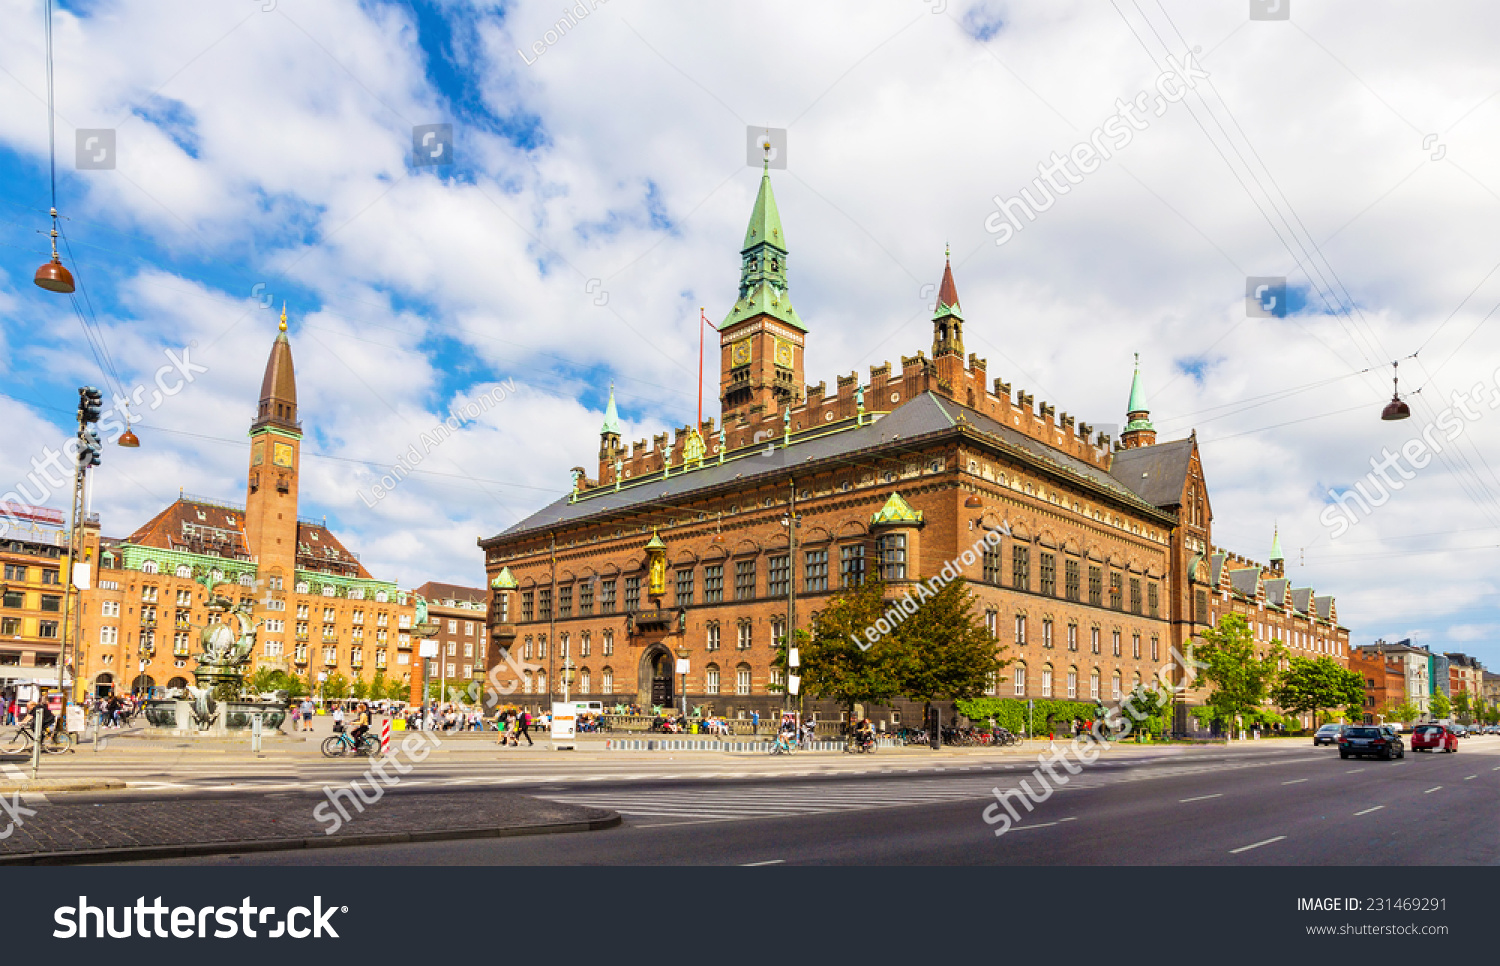 How To Figure Out Square Footage Of A House View Copenhagen City Hall Denmark Stock Photo 231469291